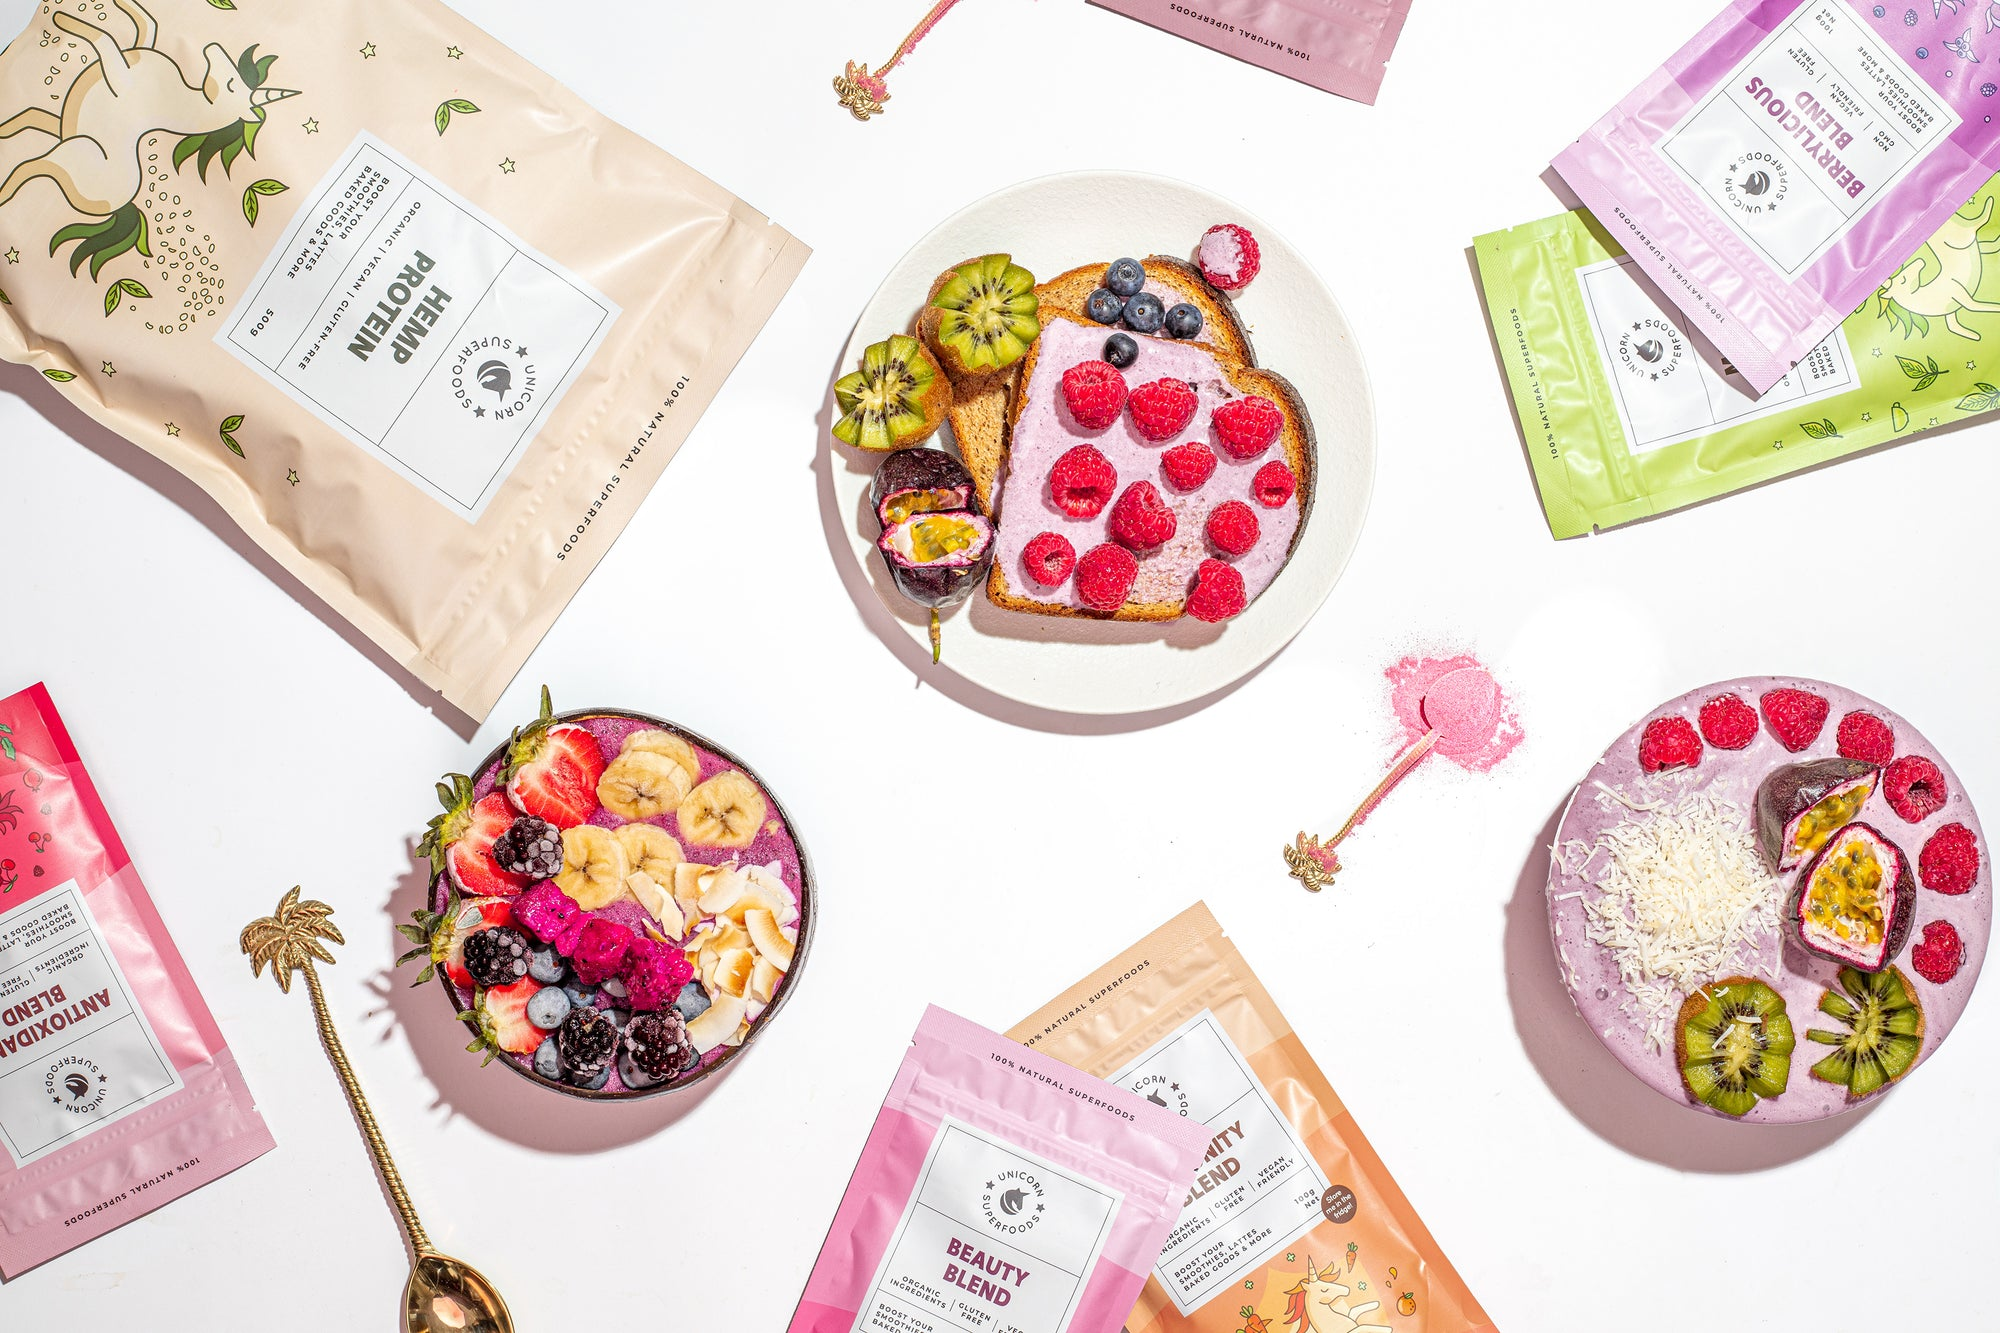 Coconut Bowls Q&A Series: Meet the Unicorn Superfood Sisters!